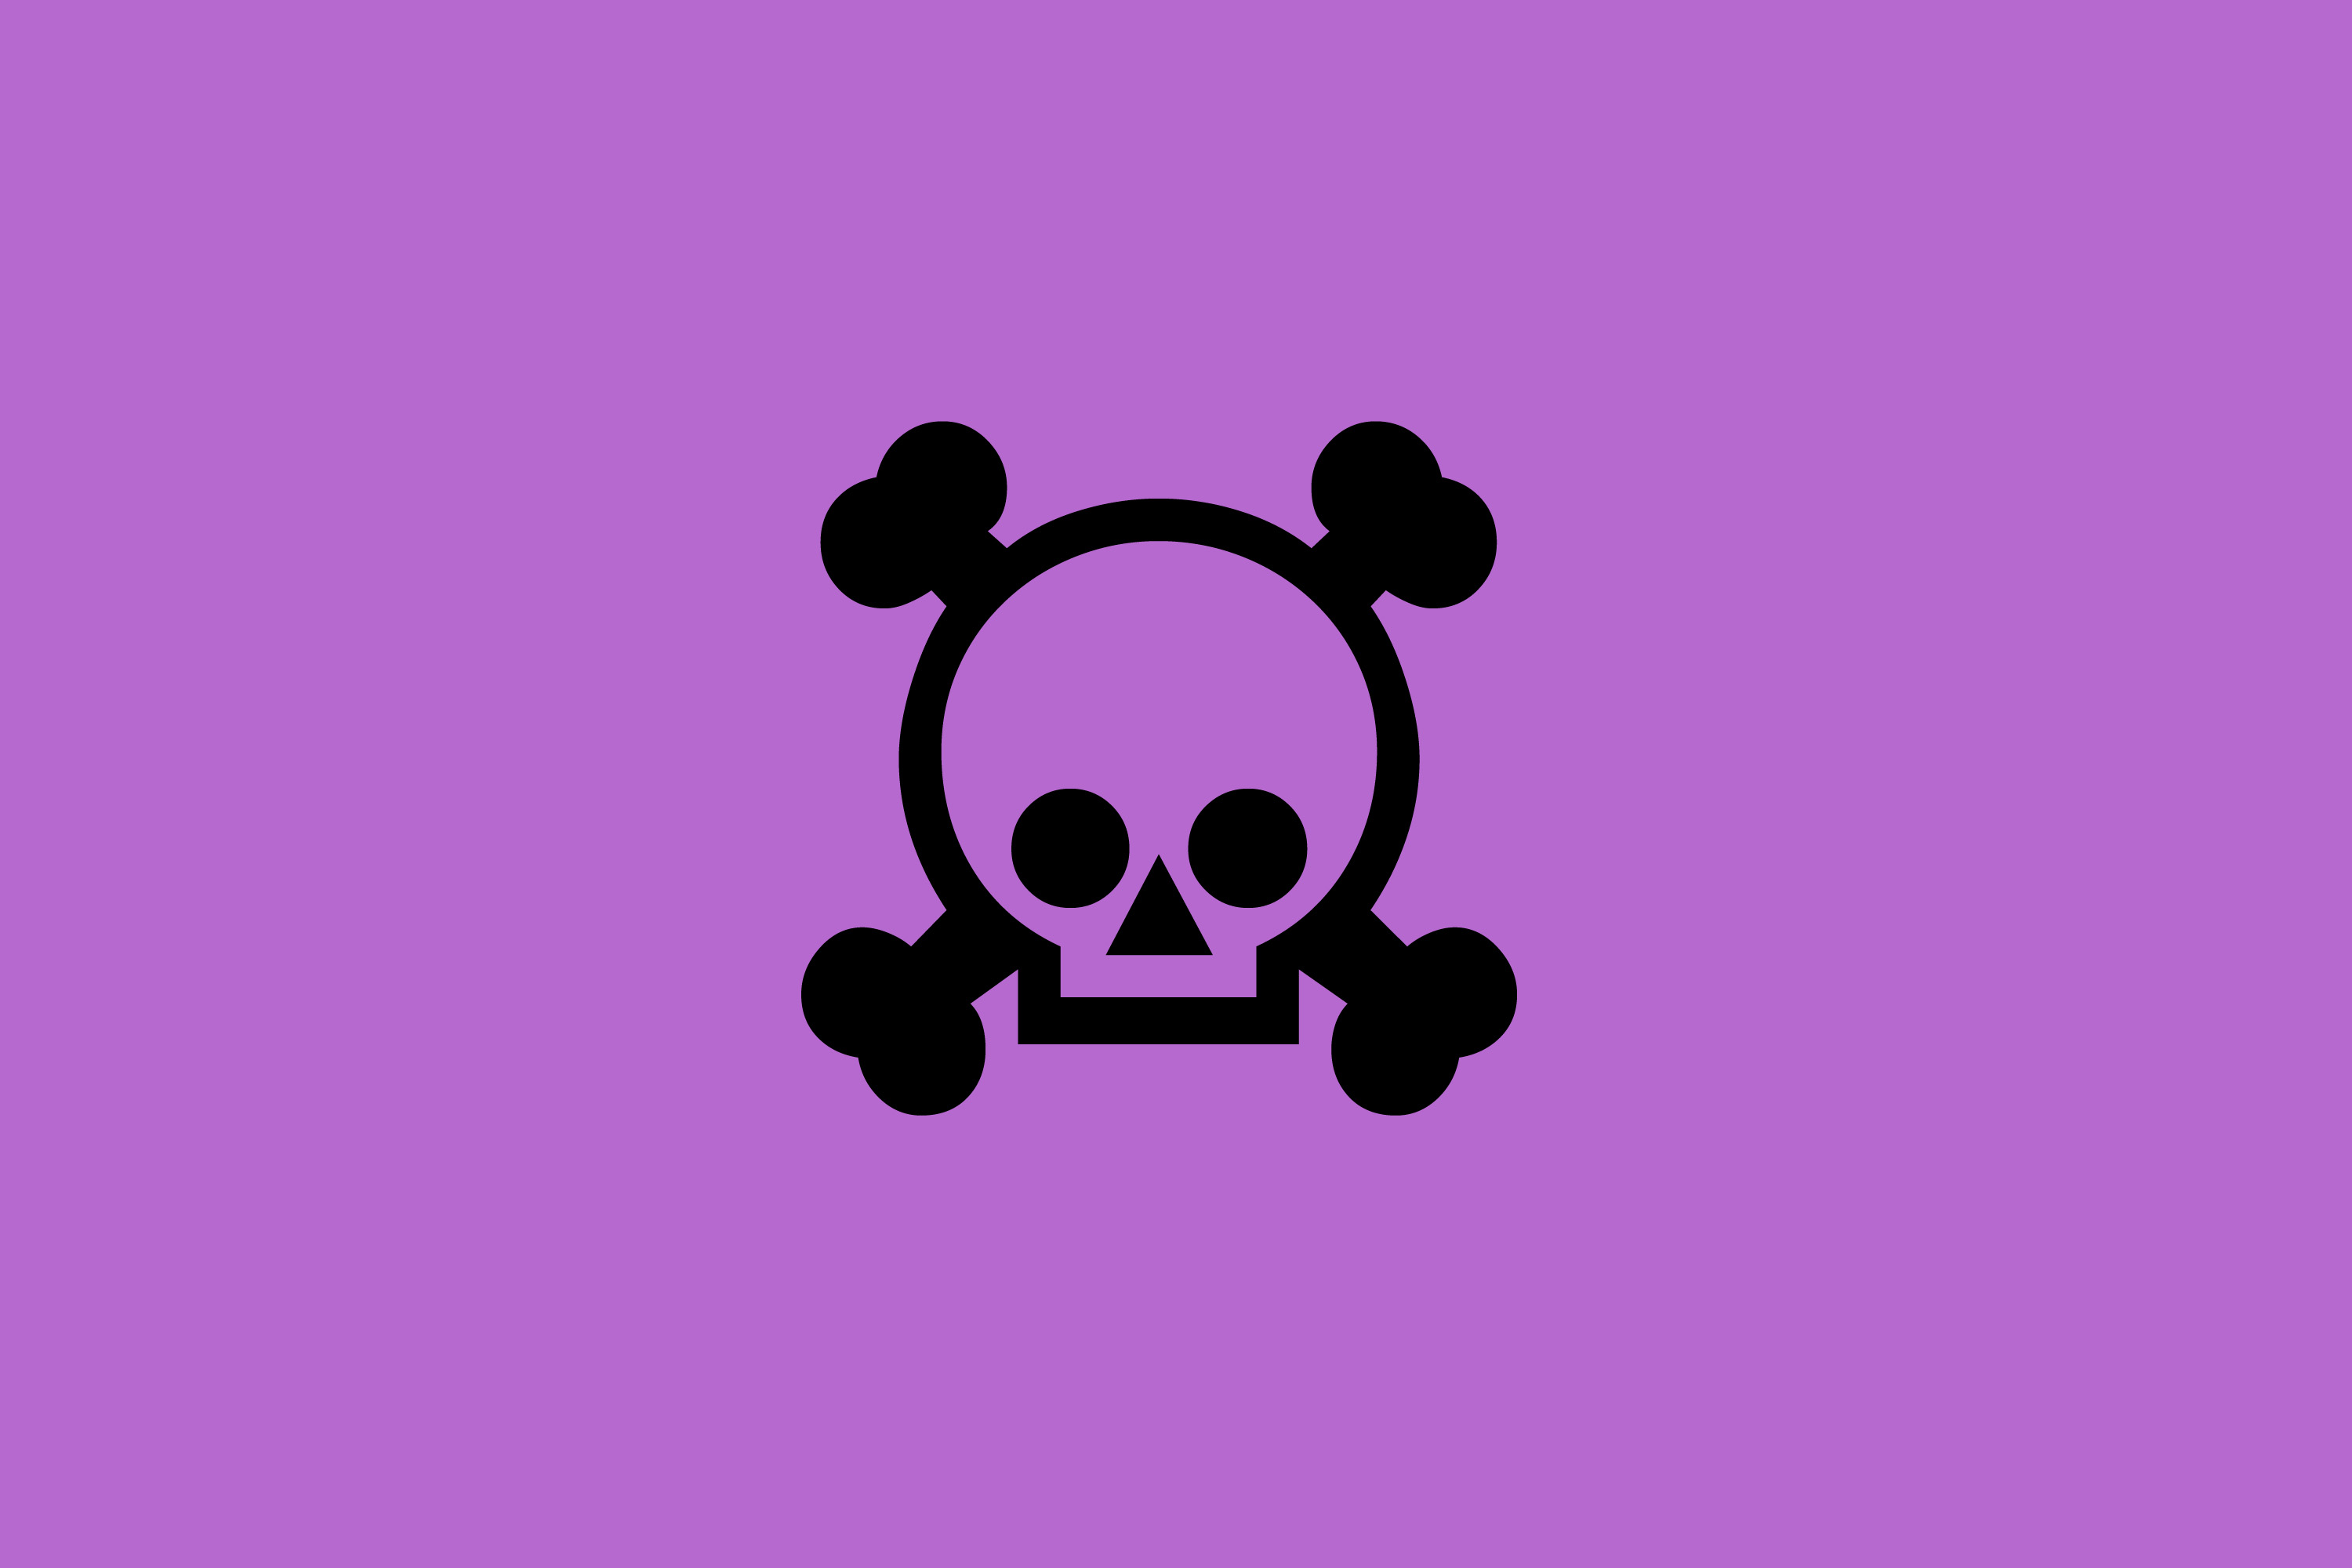 modern cartoon style skull illustration on purple